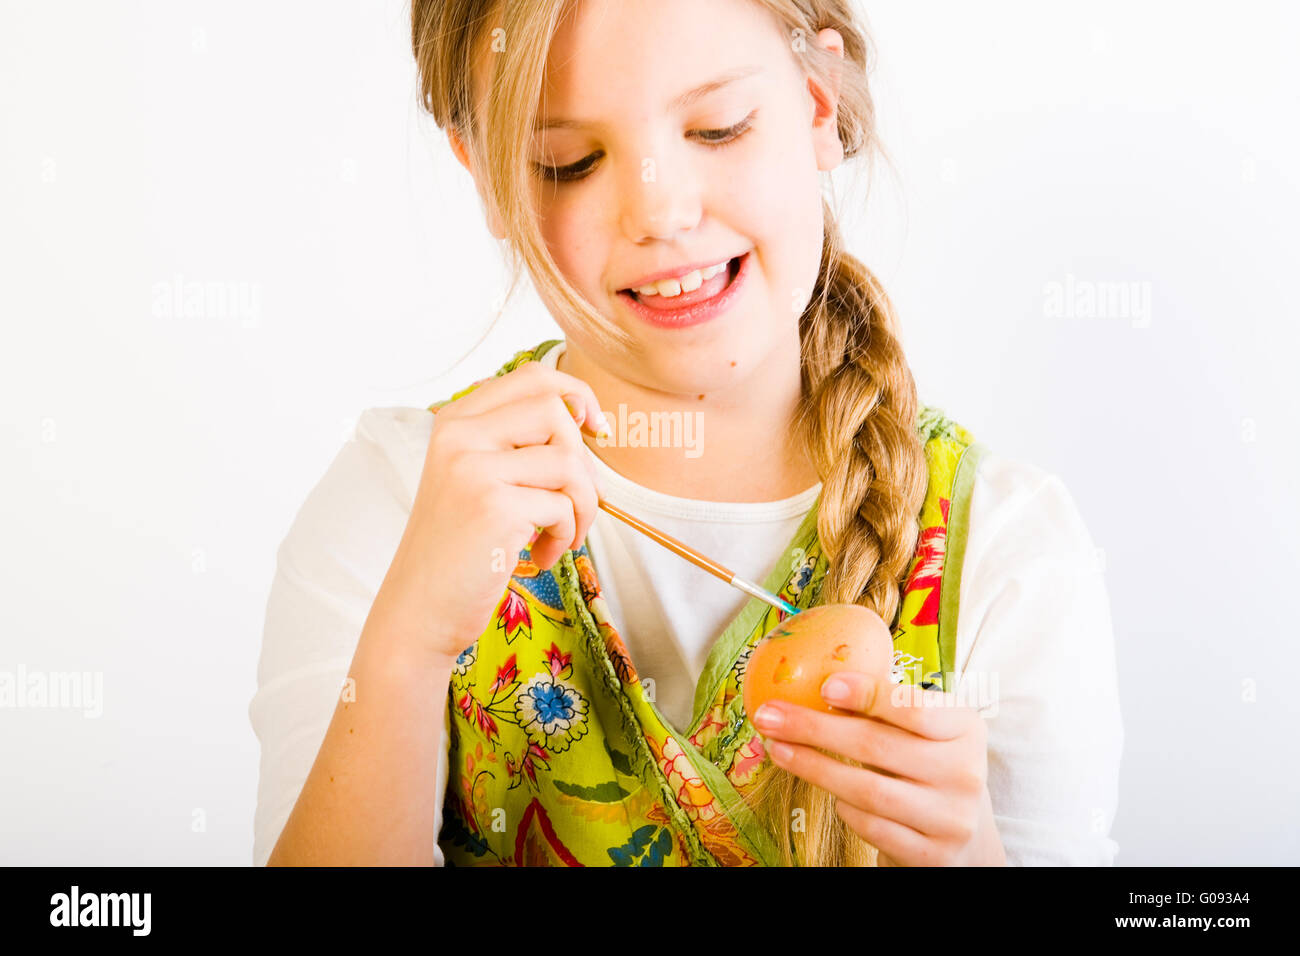 Young girl having fun painting eggs for easter - Stock Image